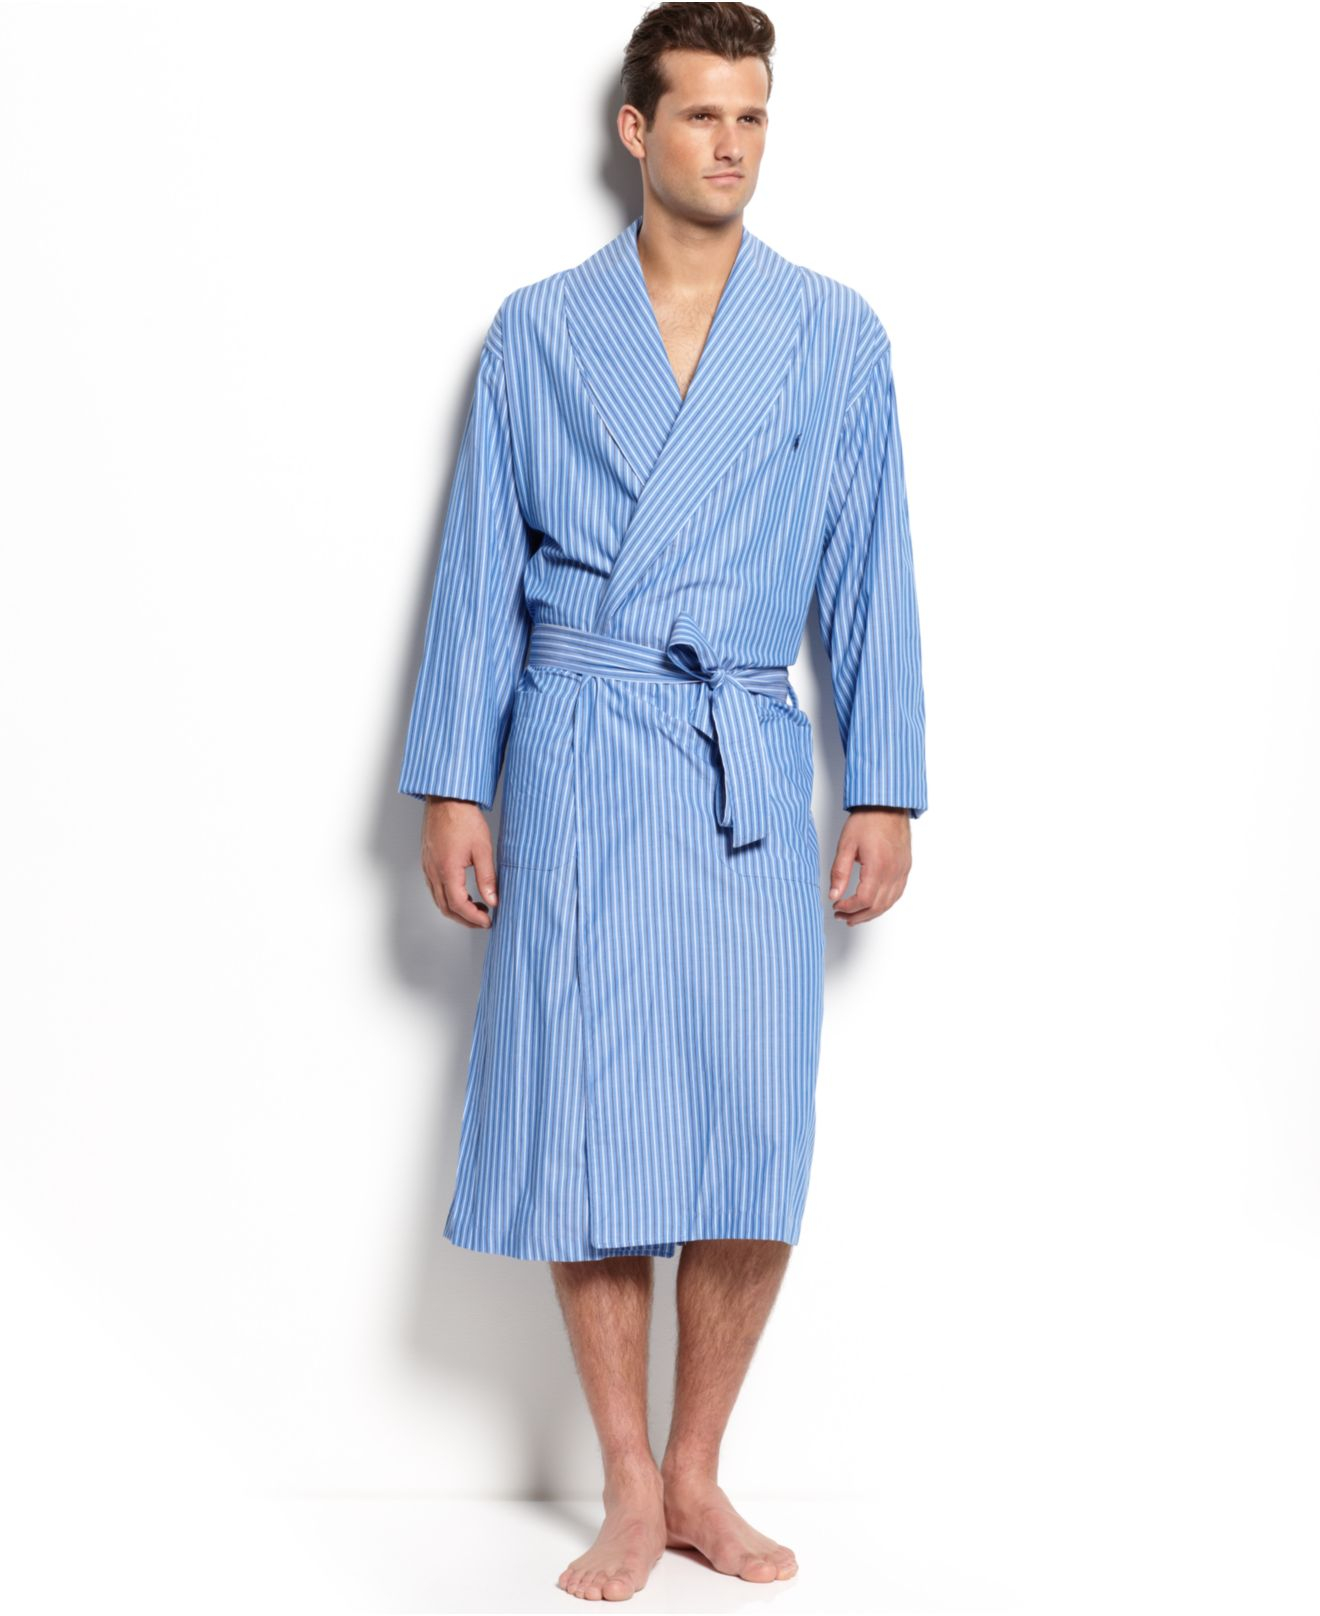 563dcc3bdc4 Polo Ralph Lauren Men s Manhattan Striped Robe in Blue for Men - Lyst